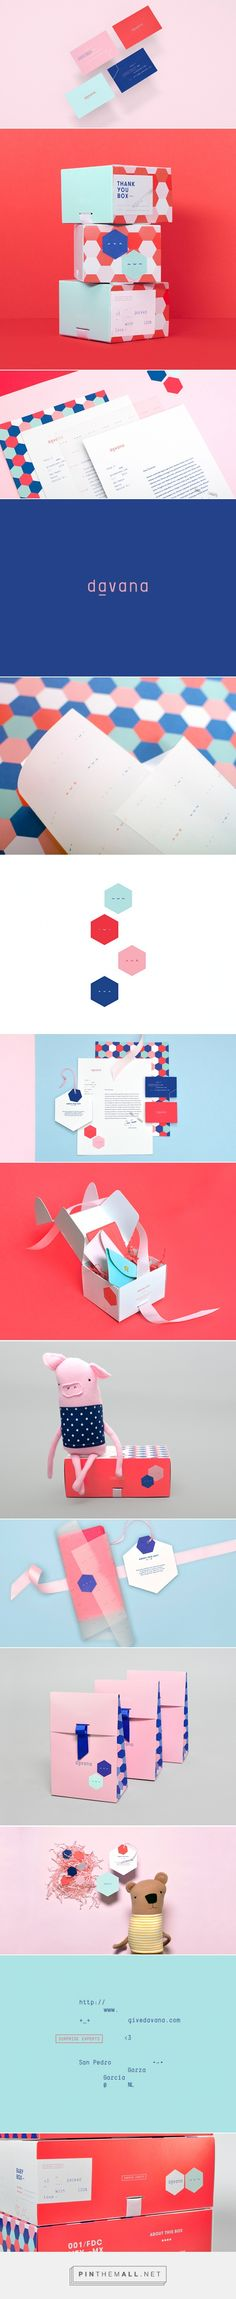 Firmalt | Branding and Advertising Agency | Davana